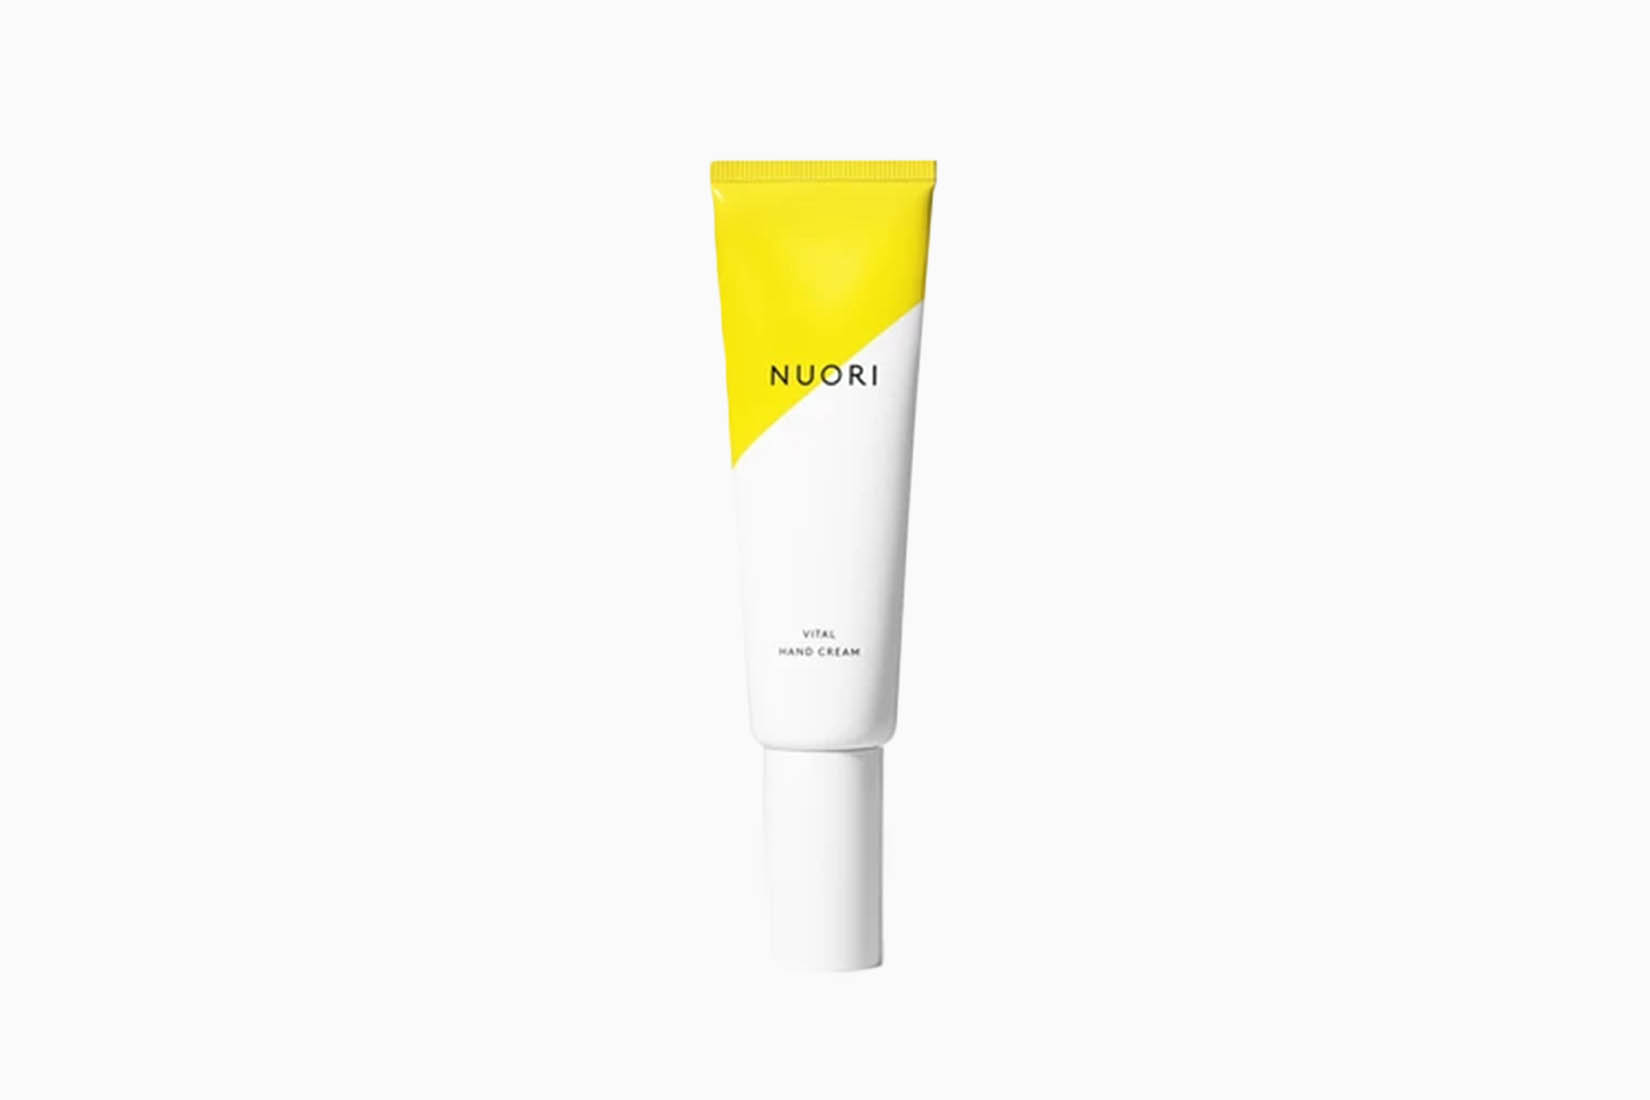 Best Hand Cream Nuori Vital Review - Luxe Digital